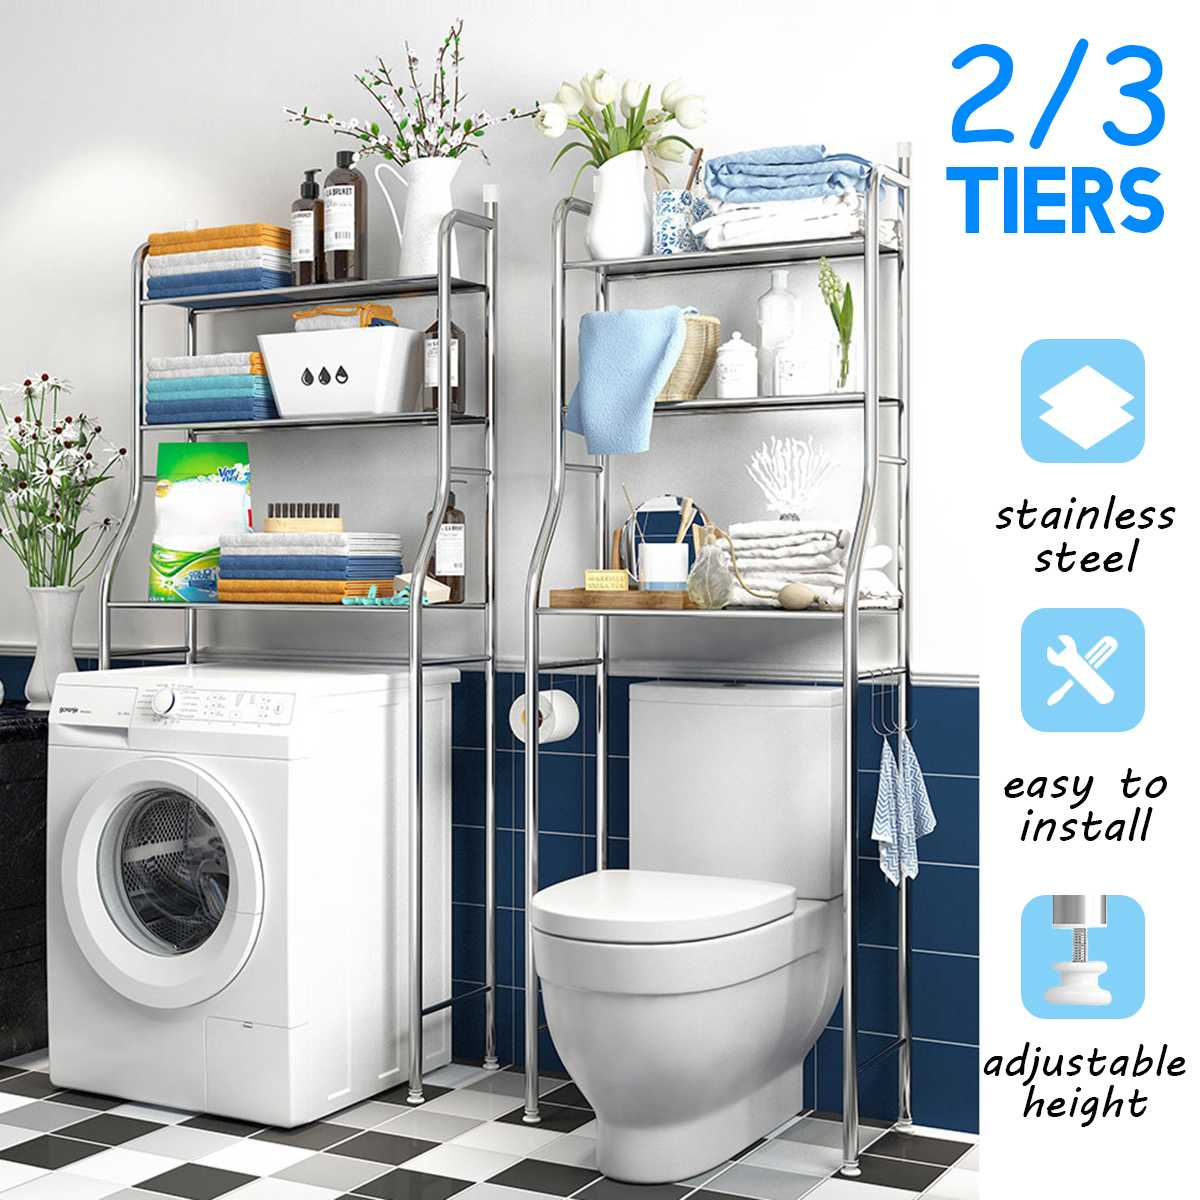 Stainless Steel Over The Rack Toilet Cabinet Shelving Kitchen Washing Machine Rack Bathroom Space Saver Shelf Organizer Holder